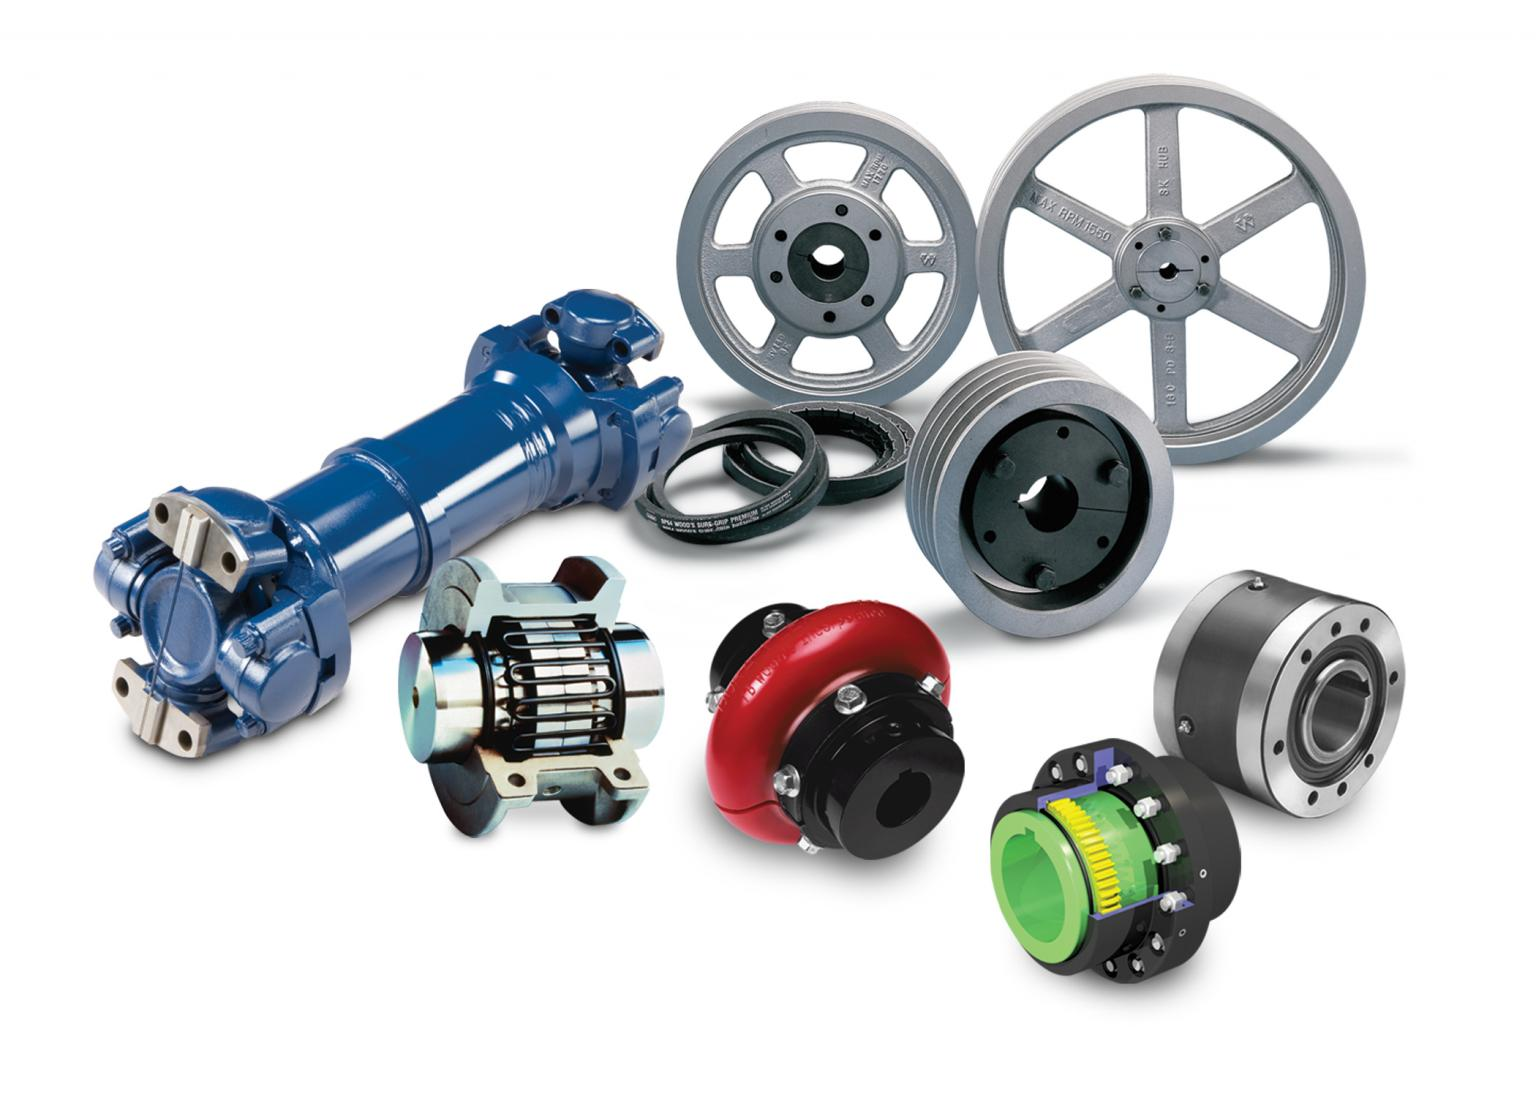 The mining industry uses overrunning clutches provided by Altra Industrial Motion